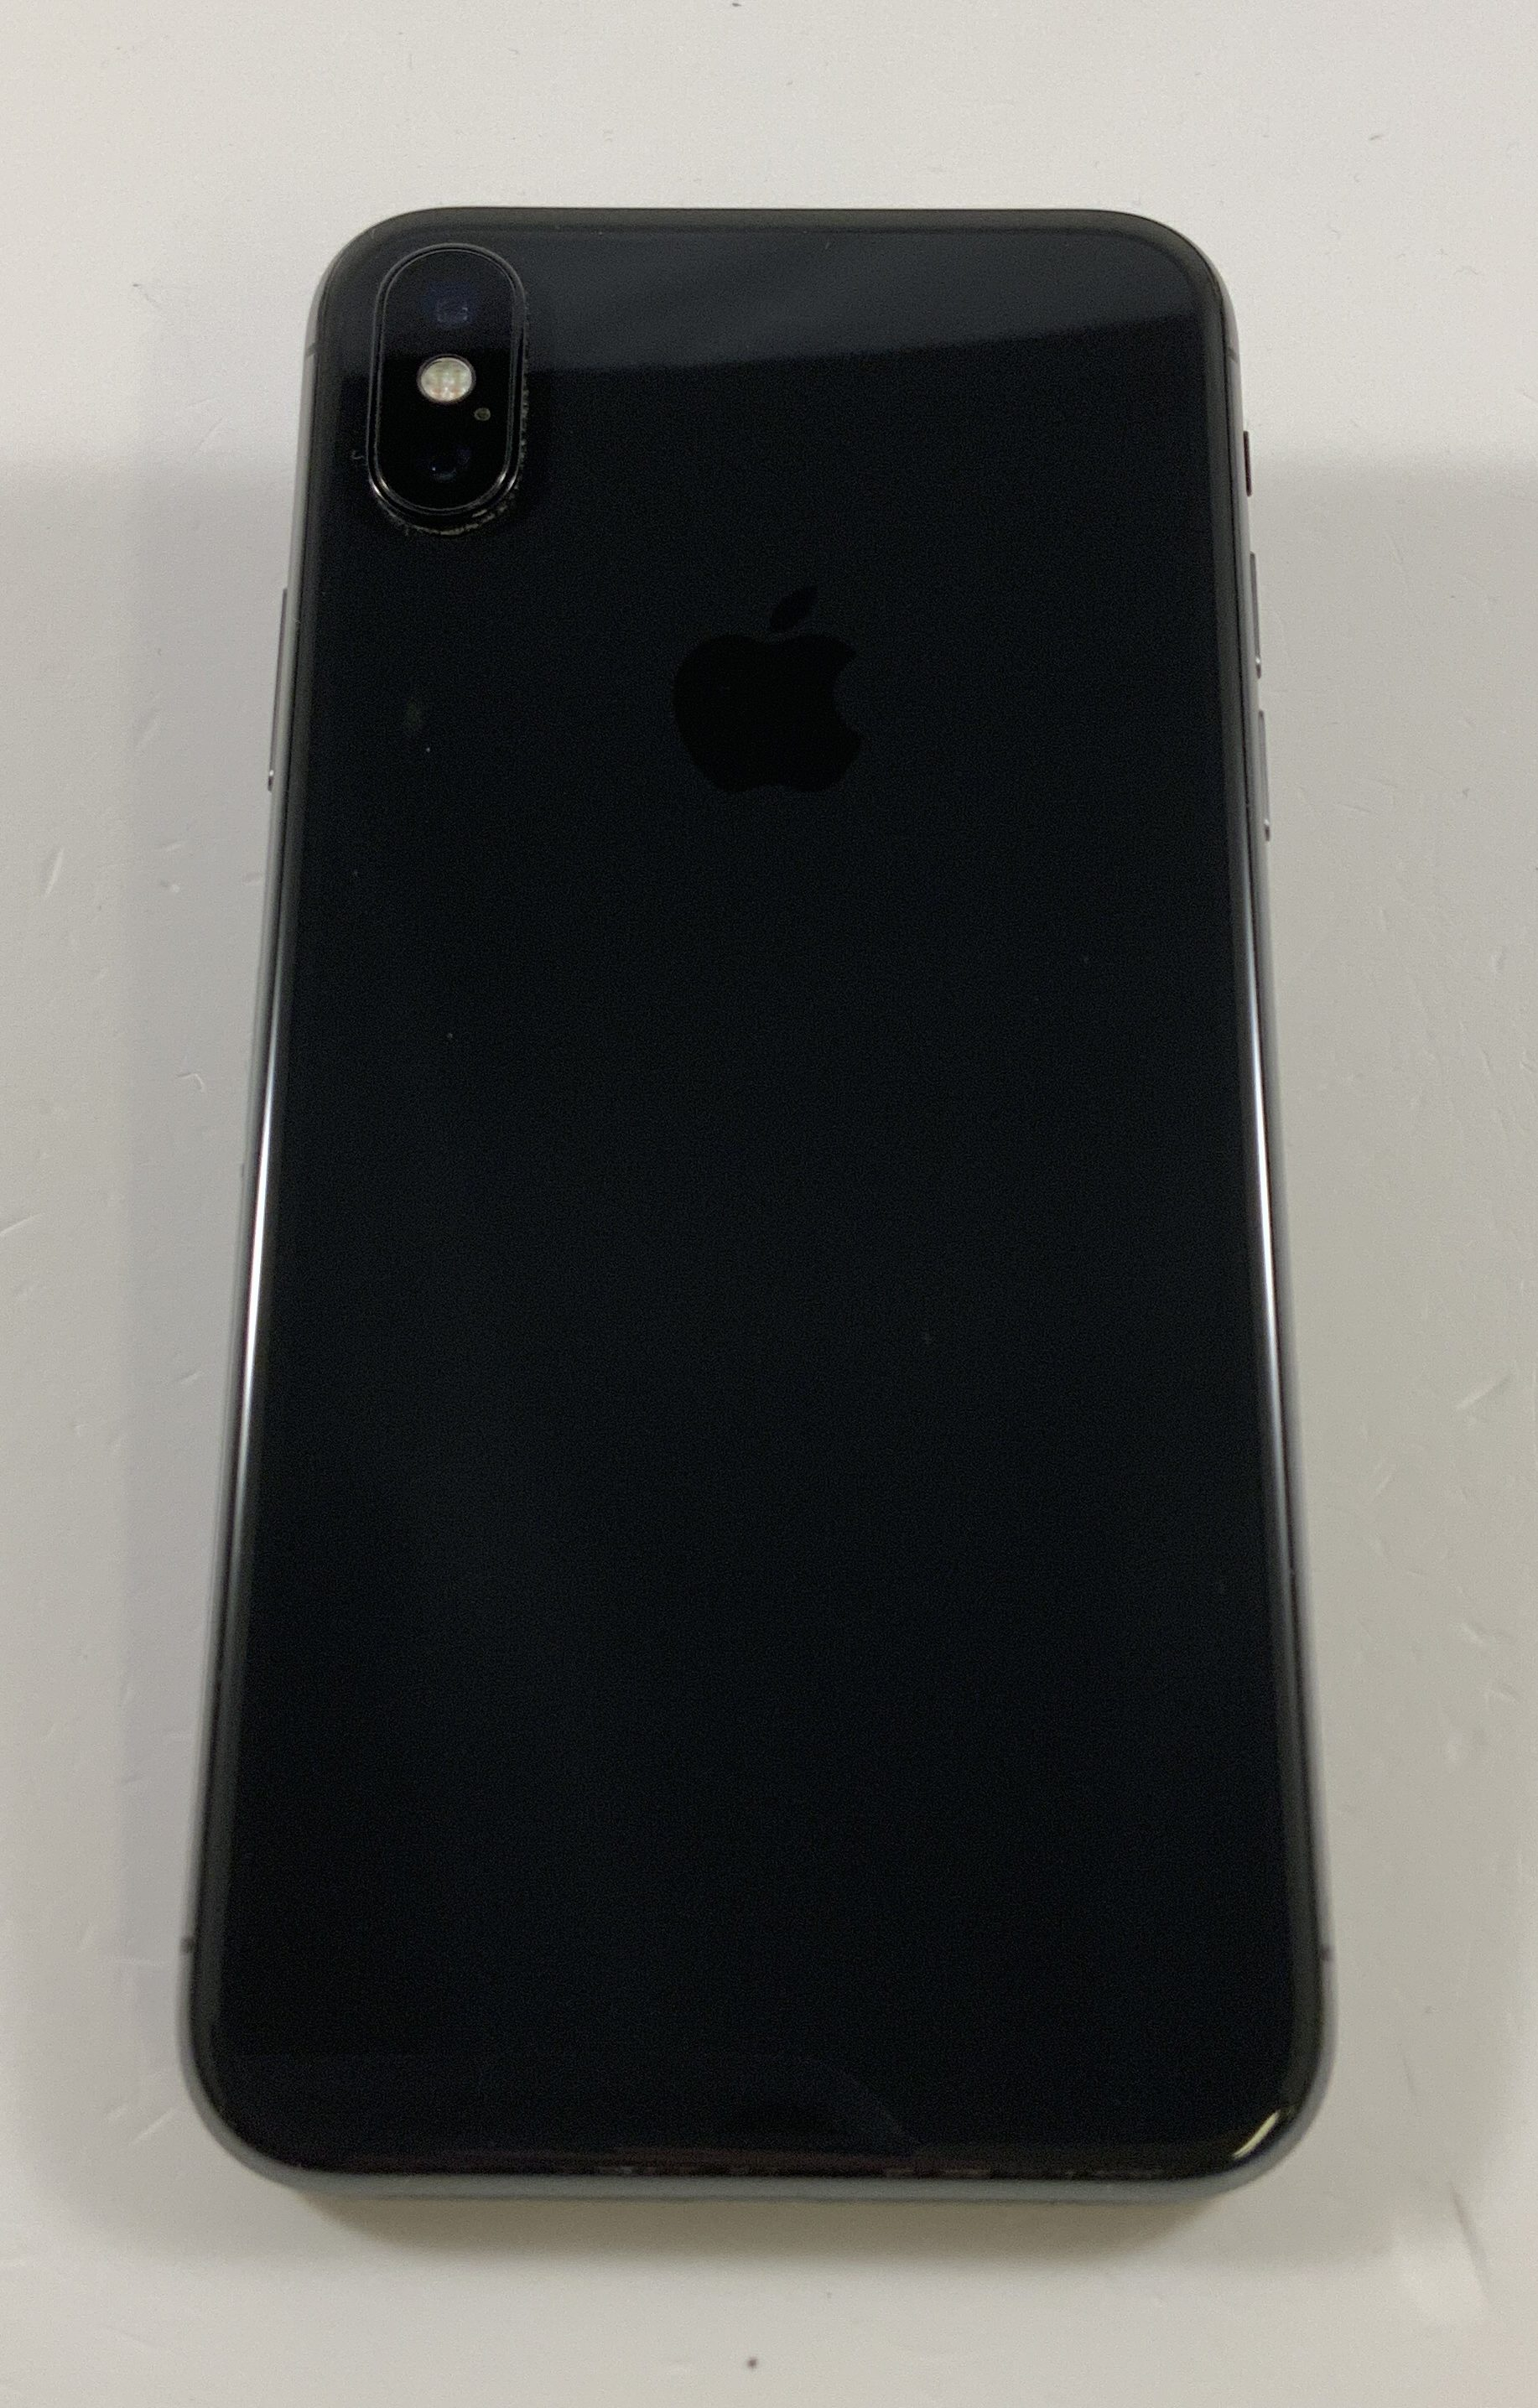 iPhone X 256GB, 256GB, Space Gray, Afbeelding 2